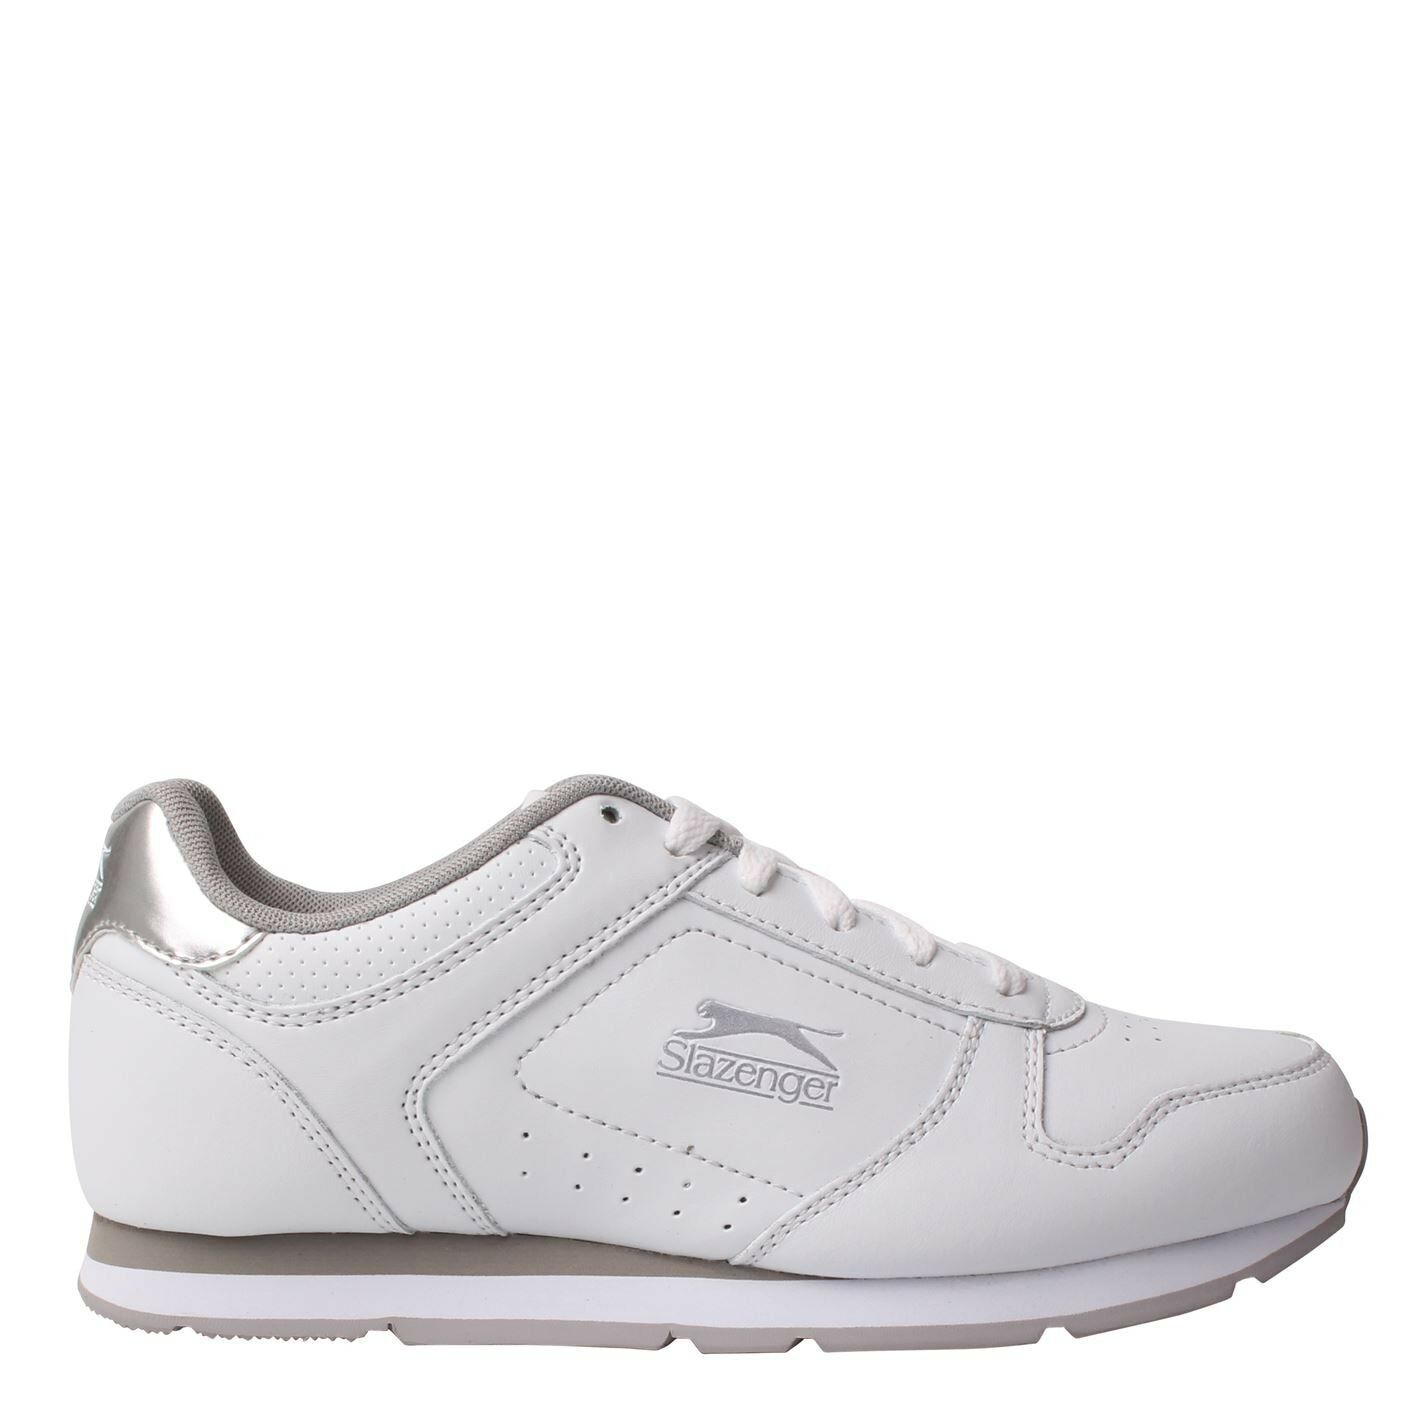 Slazenger Womens Classic Trainers Sports Shoes Lace Up Tongue Everyday